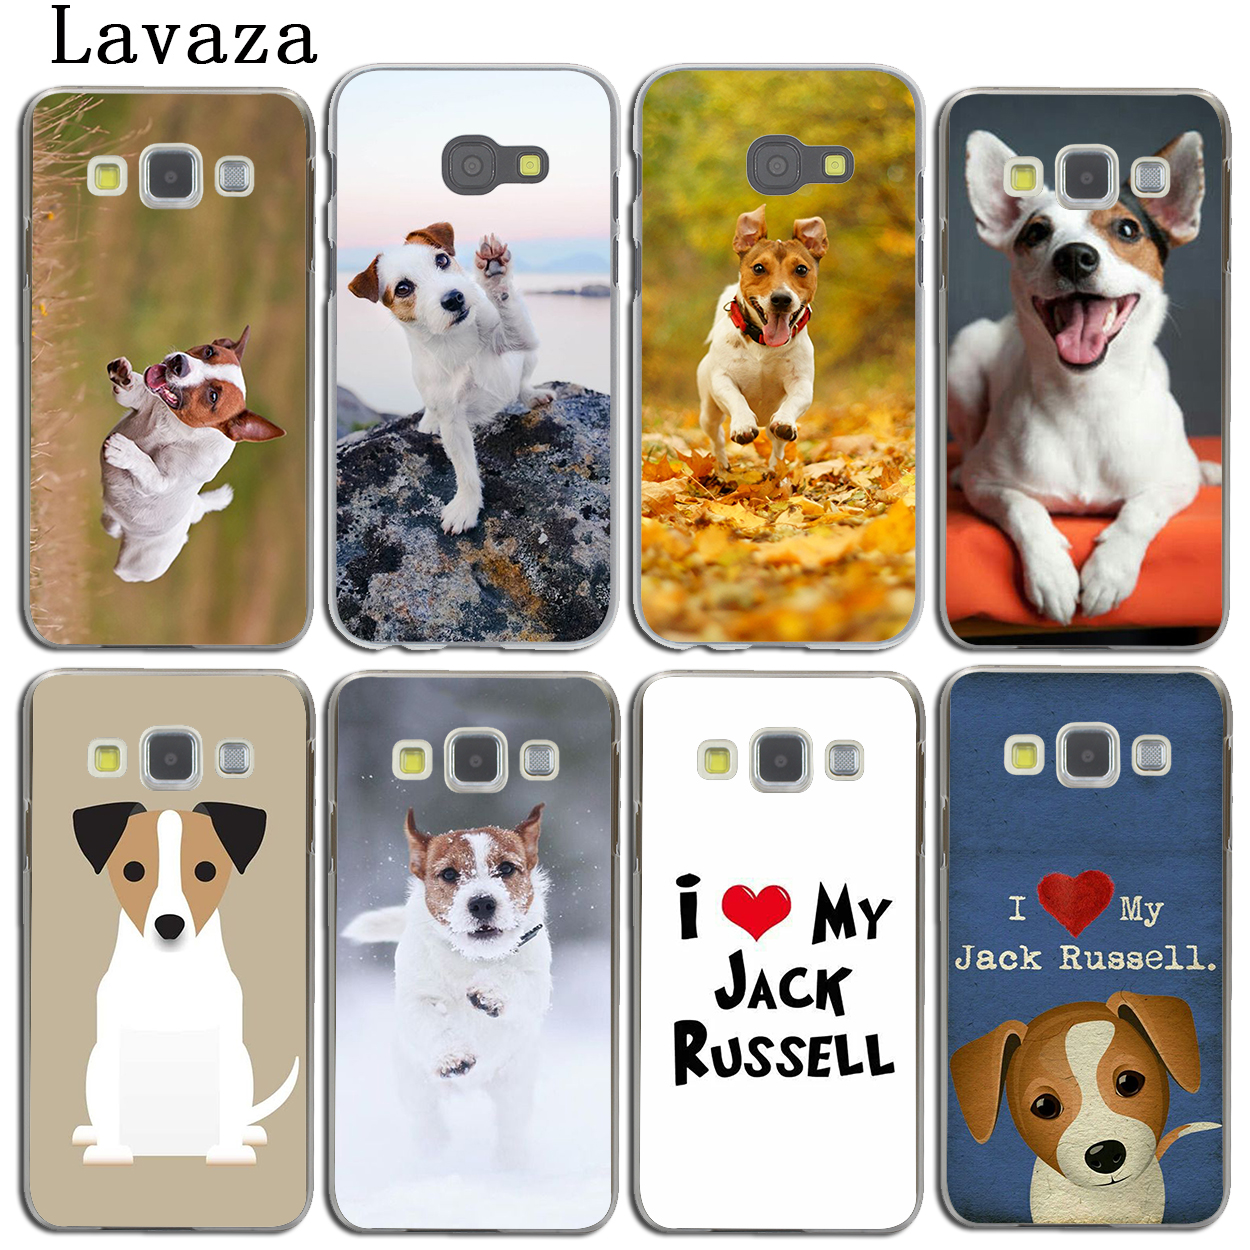 Lavaza Jack Russell Terrier <font><b>Dog</b></font> <font><b>Phone</b></font> Shell <font><b>Case</b></font> for <font><b>Samsung</b></font> <font><b>Galaxy</b></font> Note 10 8 9 A9 A8 A7 A6 Plus 2018 A2 <font><b>A3</b></font> A5 <font><b>2017</b></font> 2016 2015 image